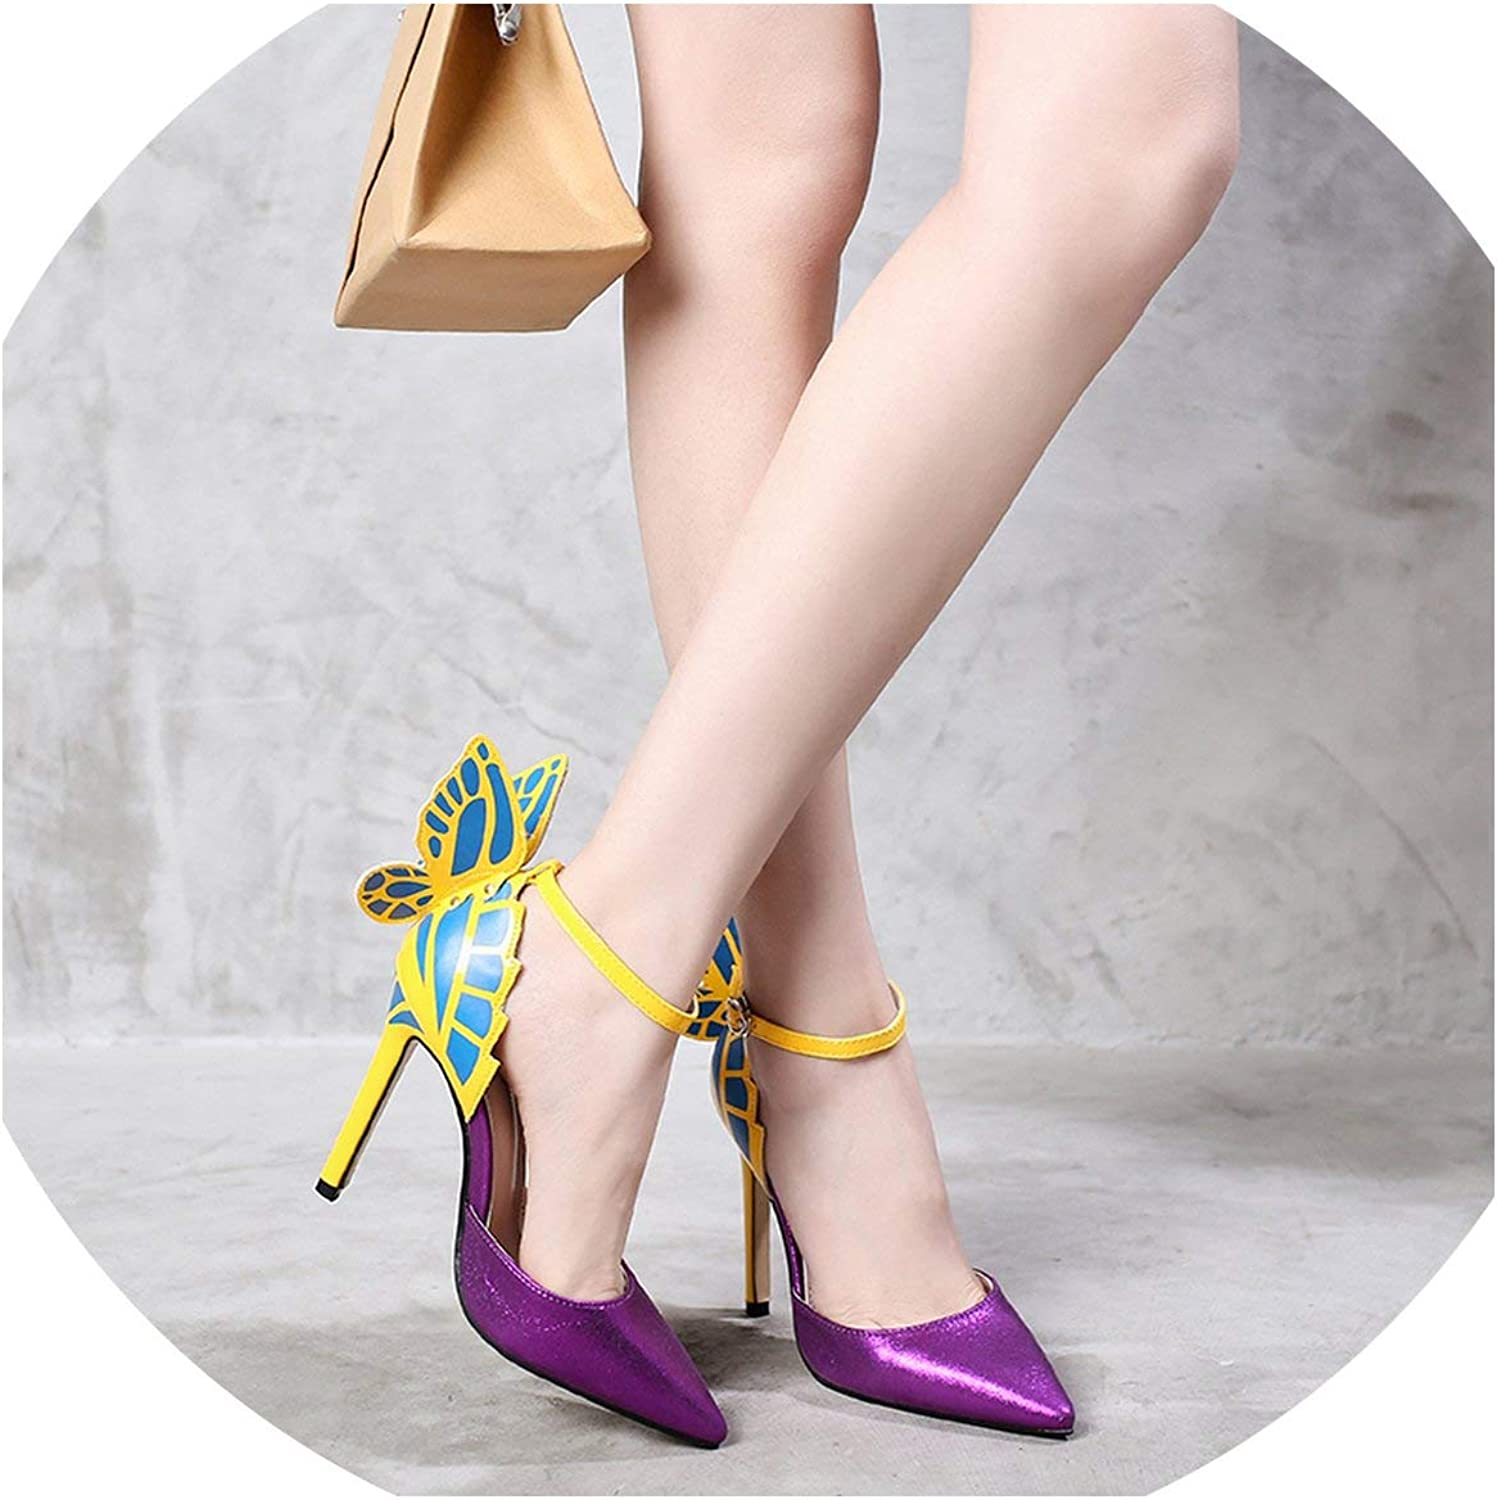 Coolemon Women Dream Butterfly Pointed Toe High Heels shoes Woman Pumps Fashion Female Ankle Strap Dress Party Wedding shoes